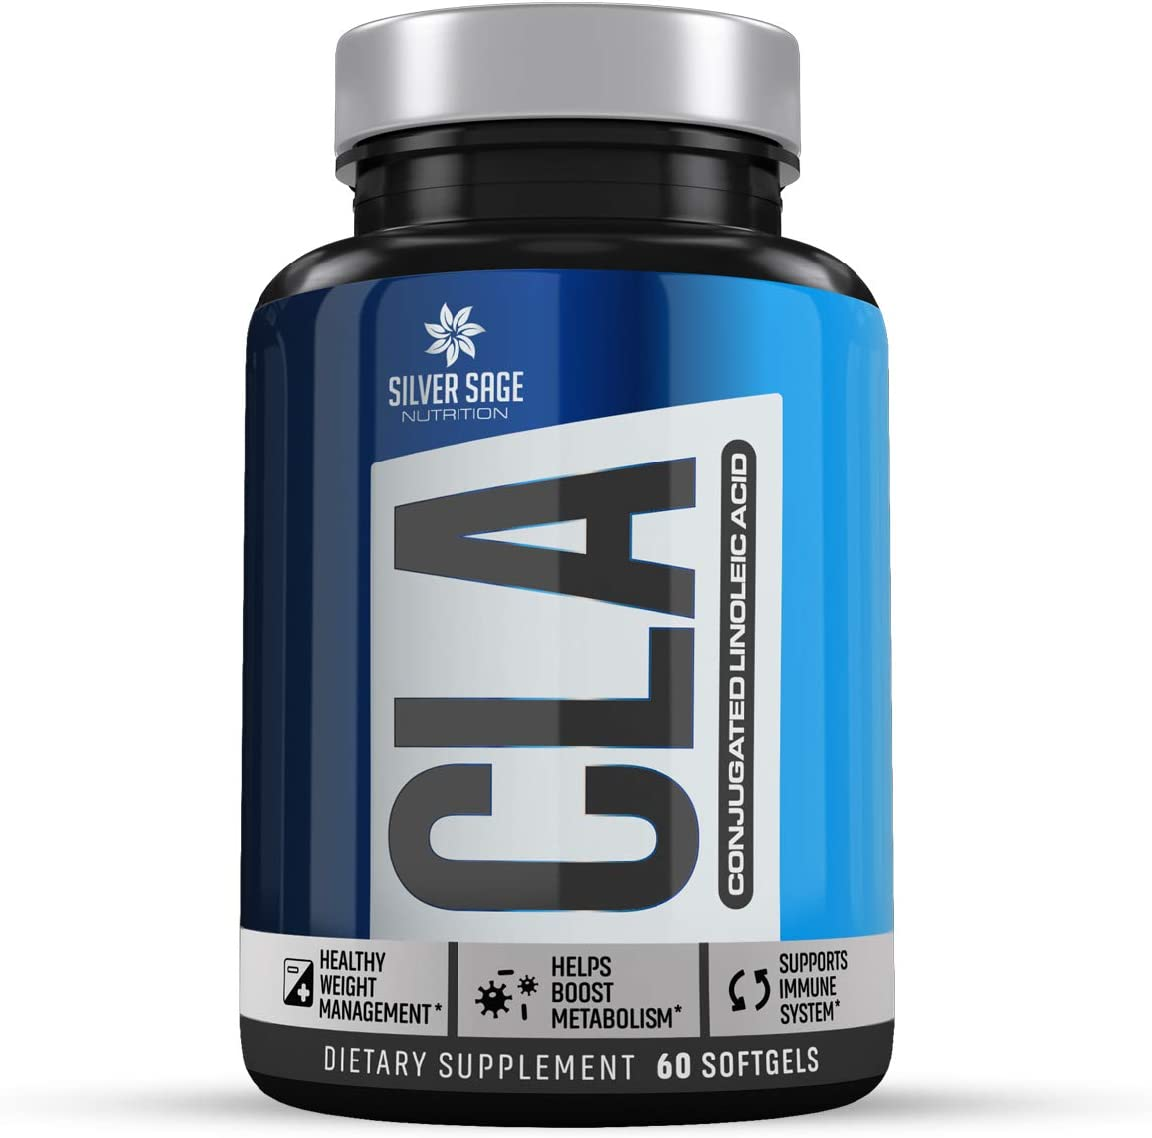 Silver Sage Nutrition CLA Supplements Weight Loss for Women   Weight Loss for Men   Conjugated Linoleic Acid   Capsules 60 Soft-Gel 2000 MG   Anti Inflammatory Retain Lean Muscle Mass Boost Metabolism : Health & Household